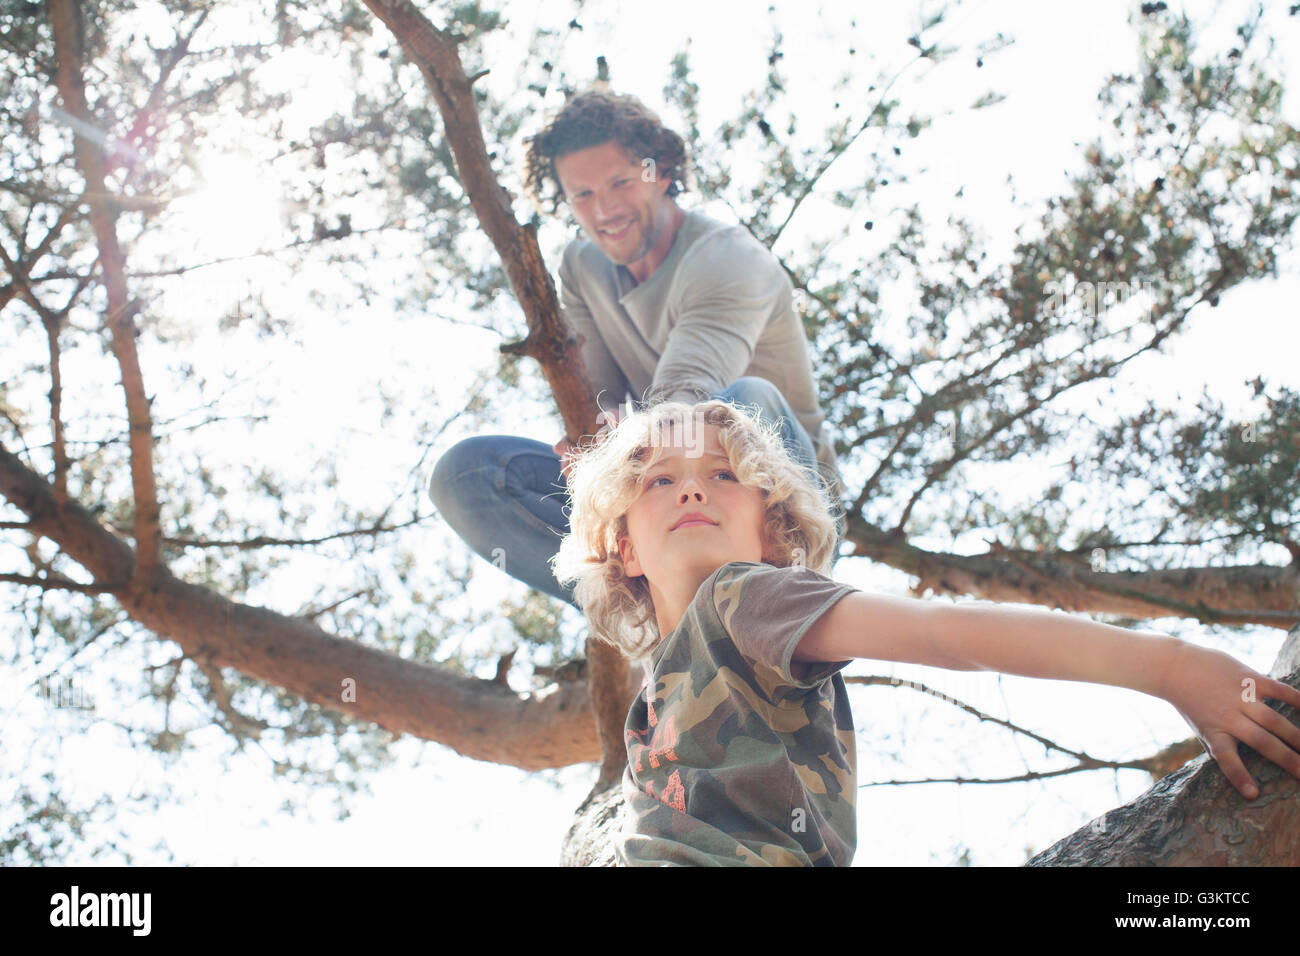 Father and son climbing tree - Stock Image